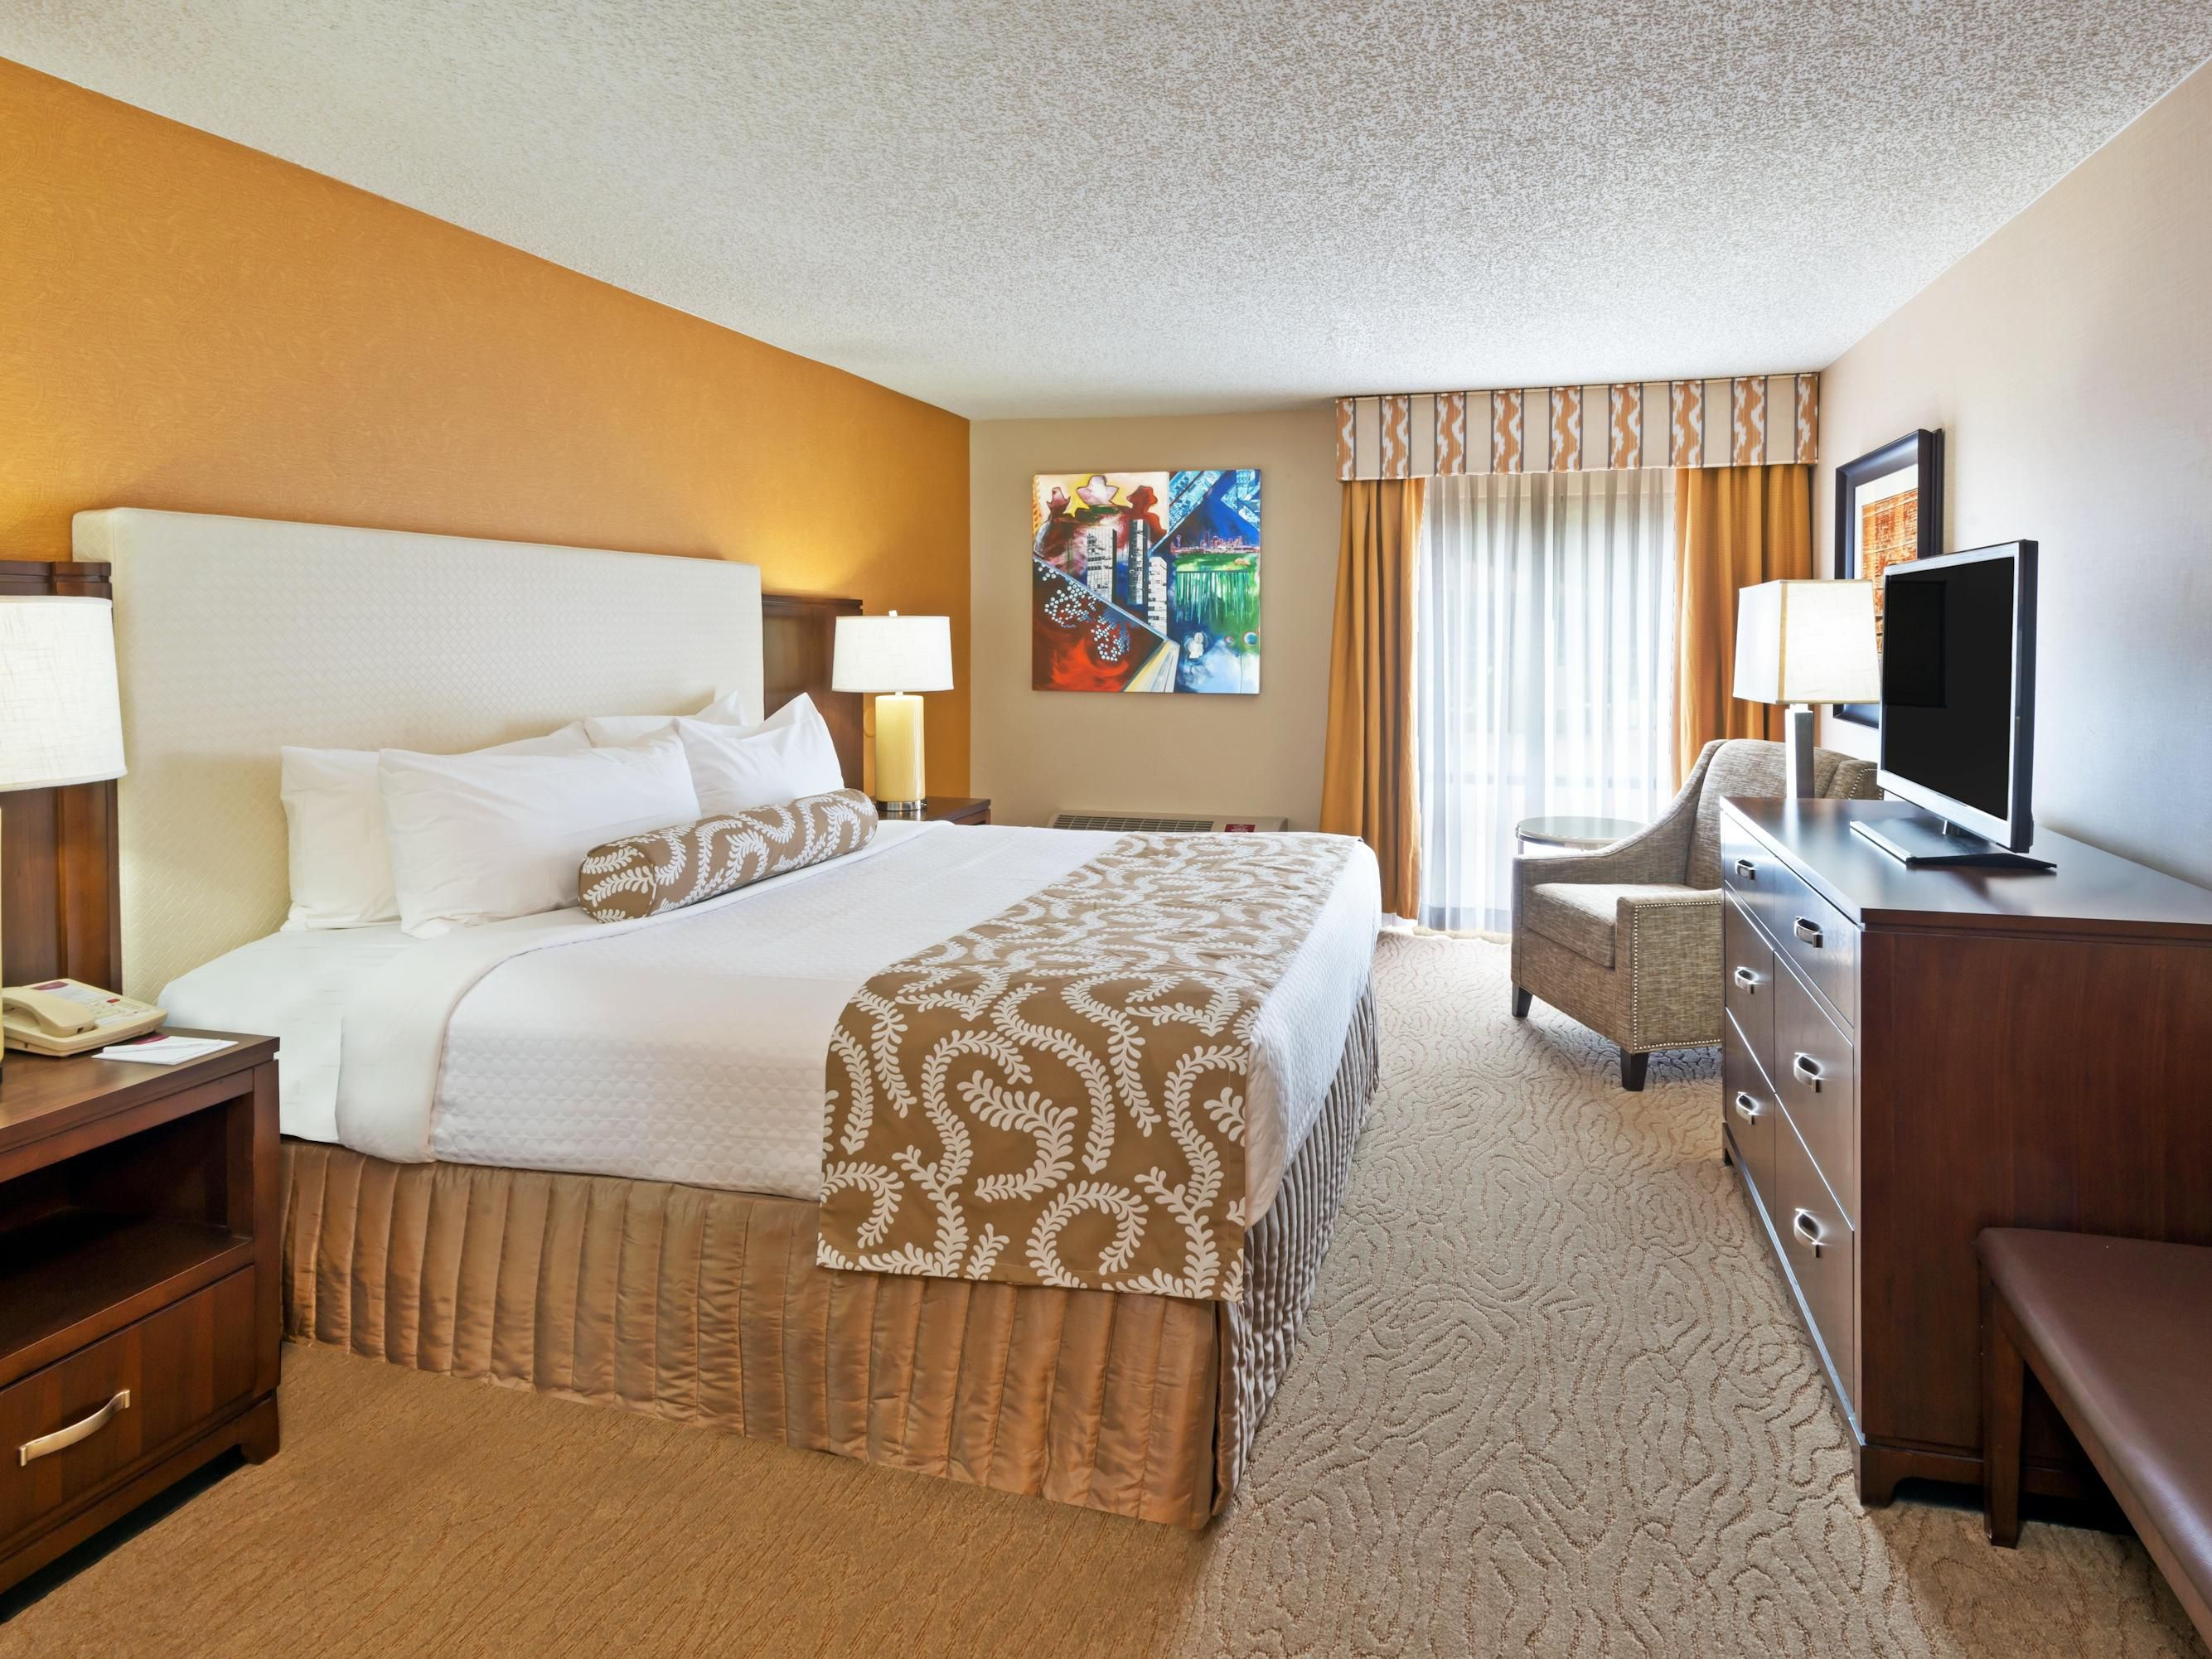 Mo mo mo modern bedroom sets dallas - Ihg Crowneplaza Components Photogallery Roomphotos Primary